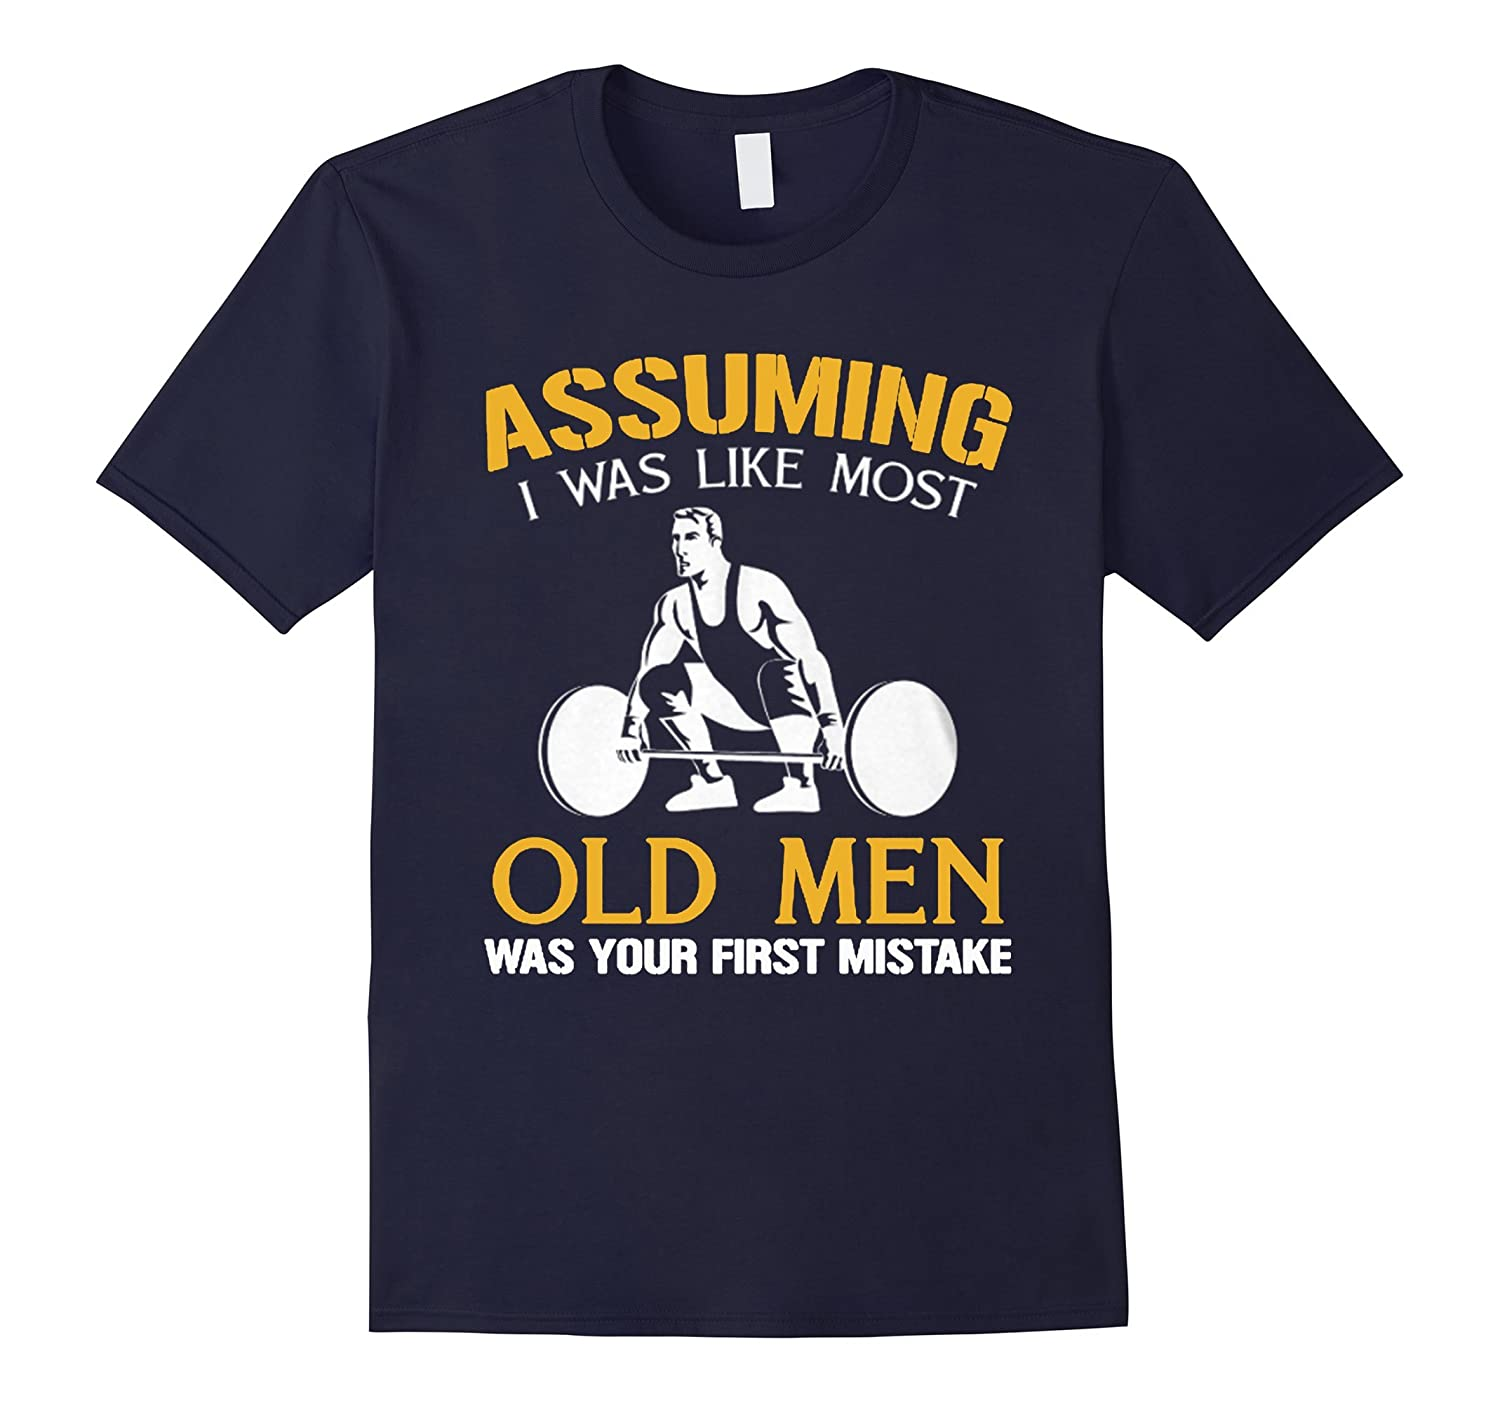 Assuming I was like most Old Women was your first mistake-Art